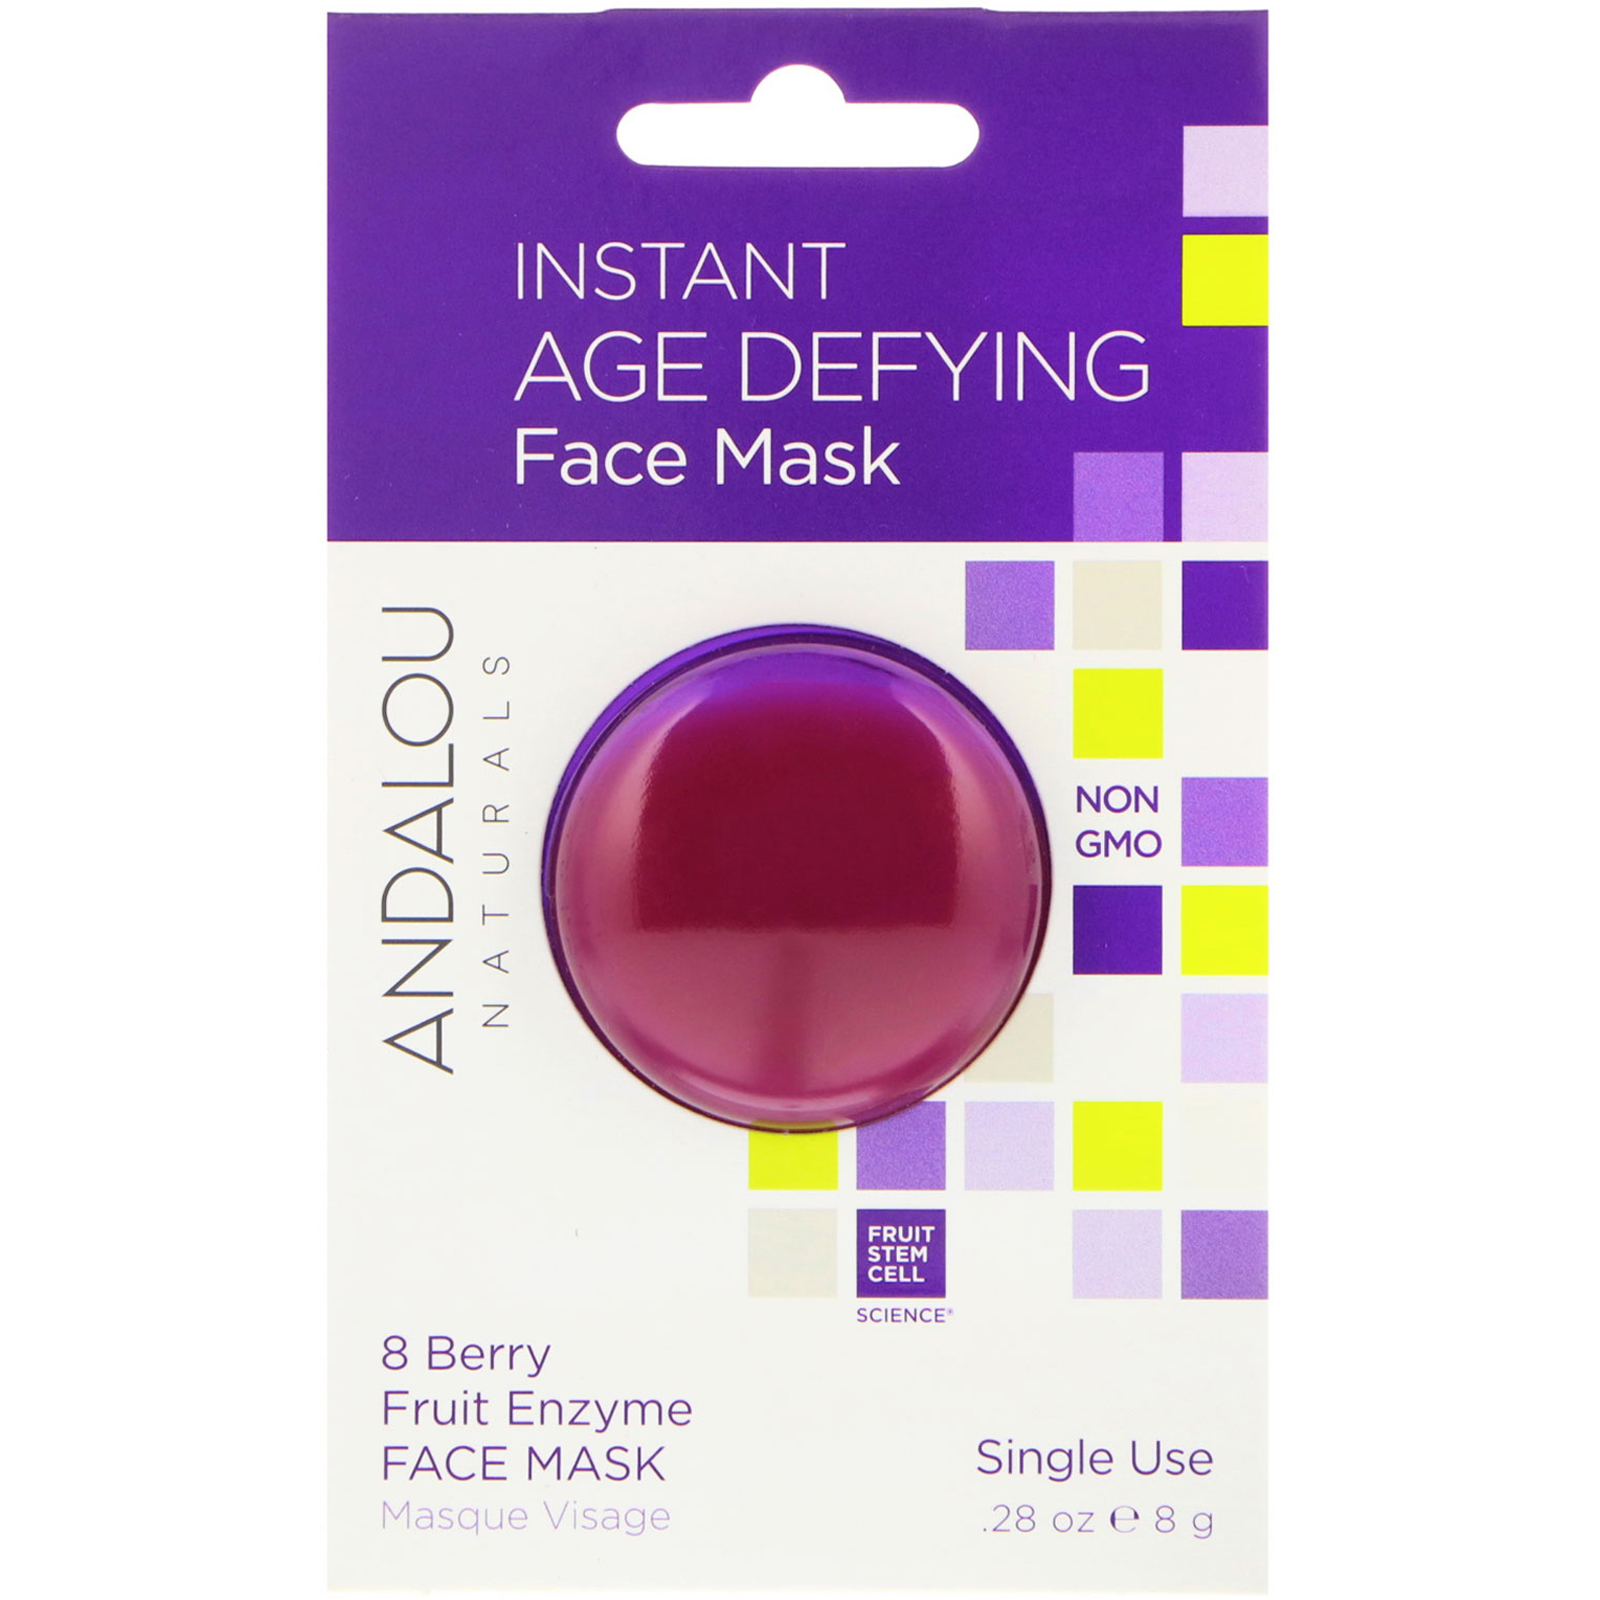 Age-Defying Enzyme Face Mask Bioactive 8 Berry - 1.7 oz. by Andalou Naturals (pack of 1) Living Source Hyaluronic Acid Hydrating Eye Cream 0.5 oz